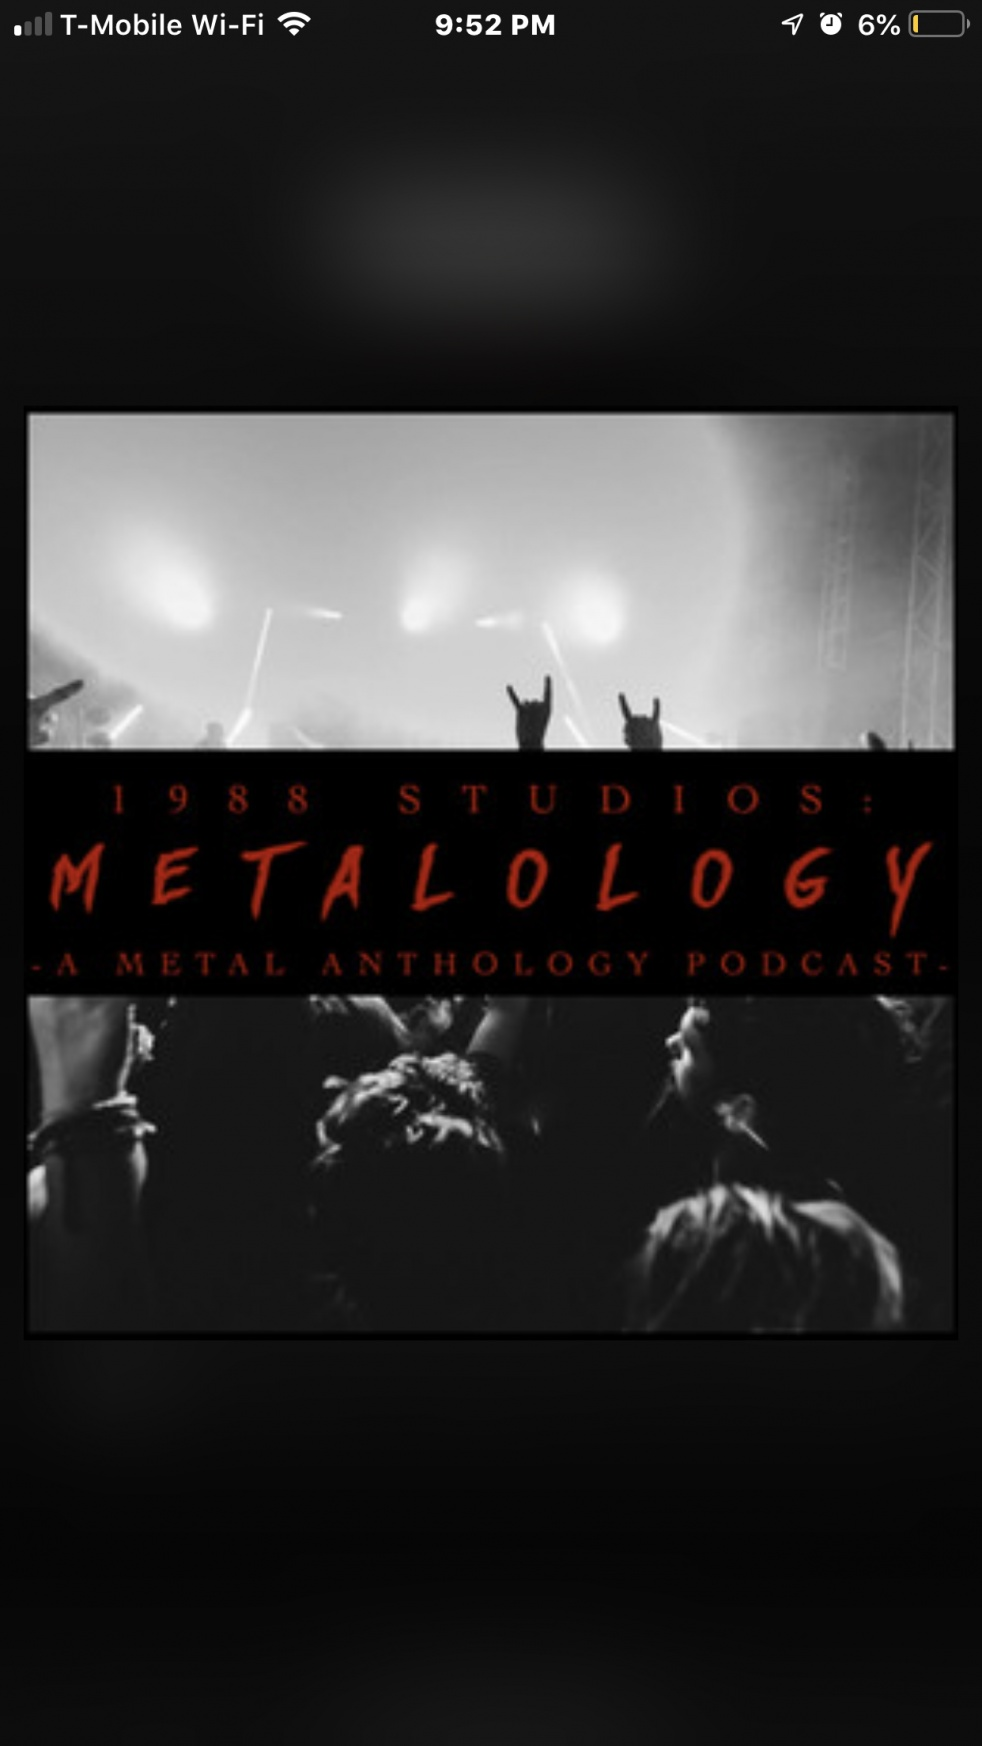 Metalology - show cover